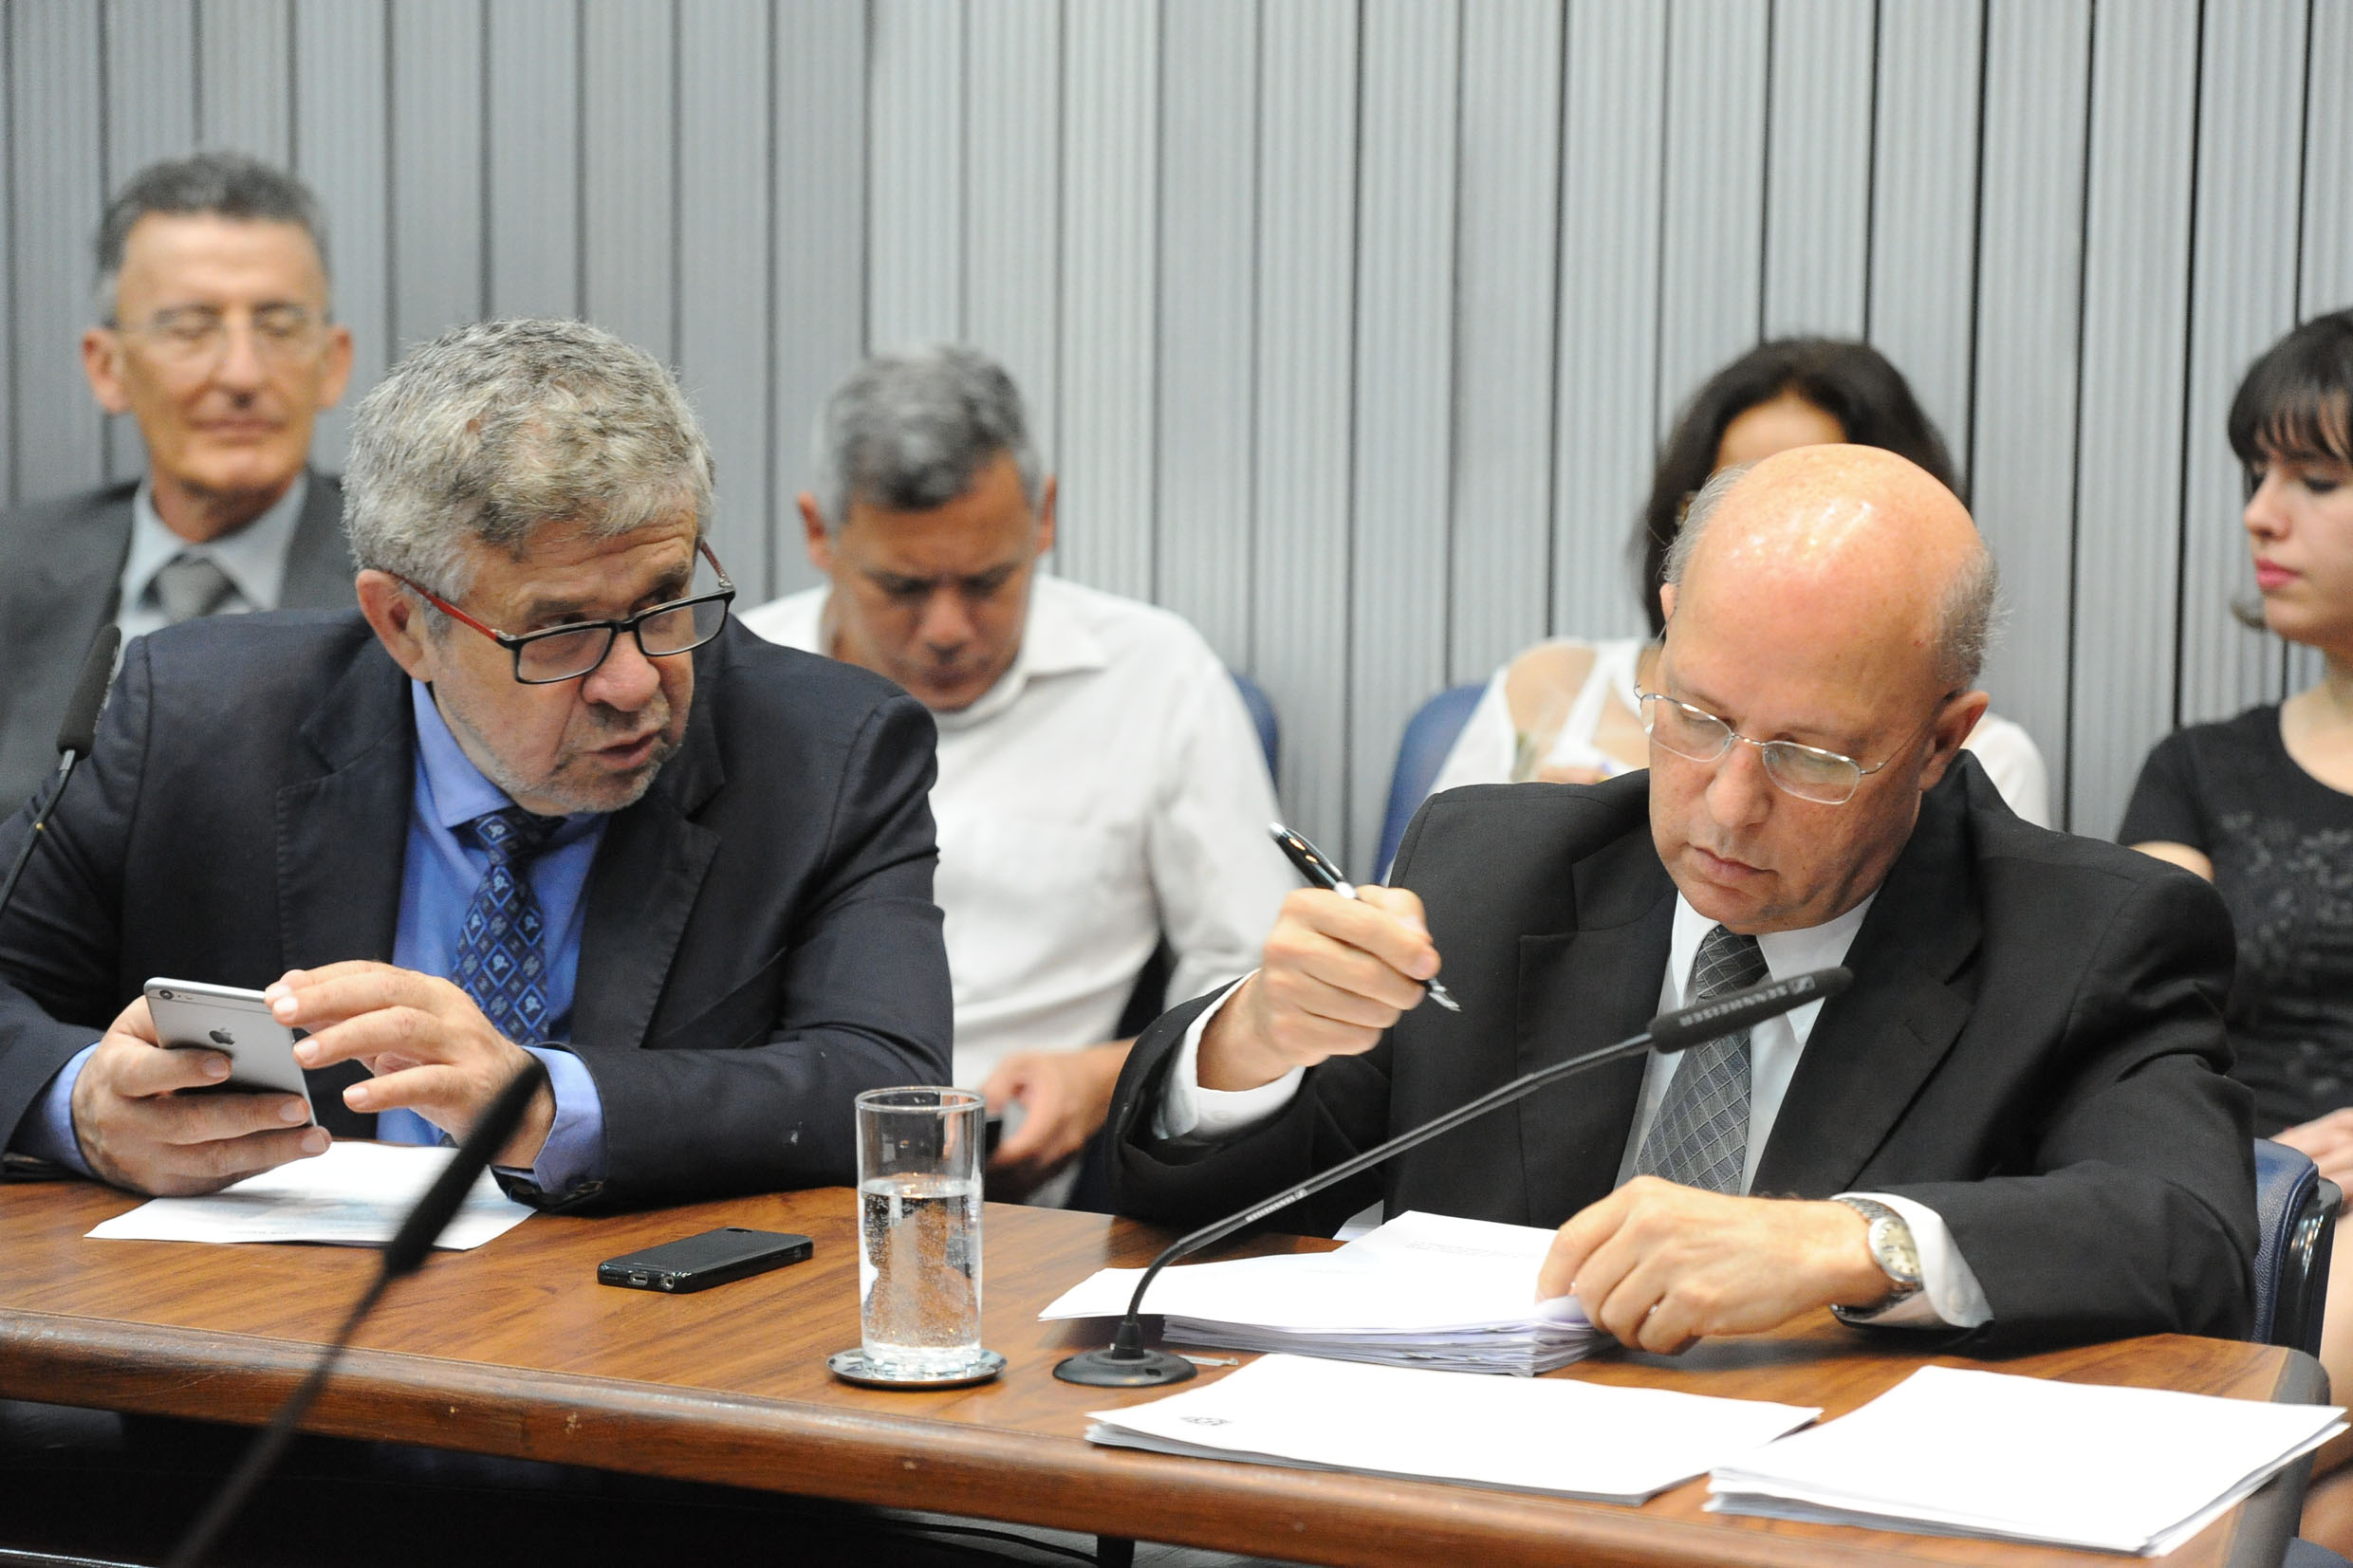 Parlamentares na CPI<a style='float:right' href='https://www3.al.sp.gov.br/repositorio/noticia/N-06-2018/fg225528.jpg' target=_blank><img src='/_img/material-file-download-white.png' width='14px' alt='Clique para baixar a imagem'></a>